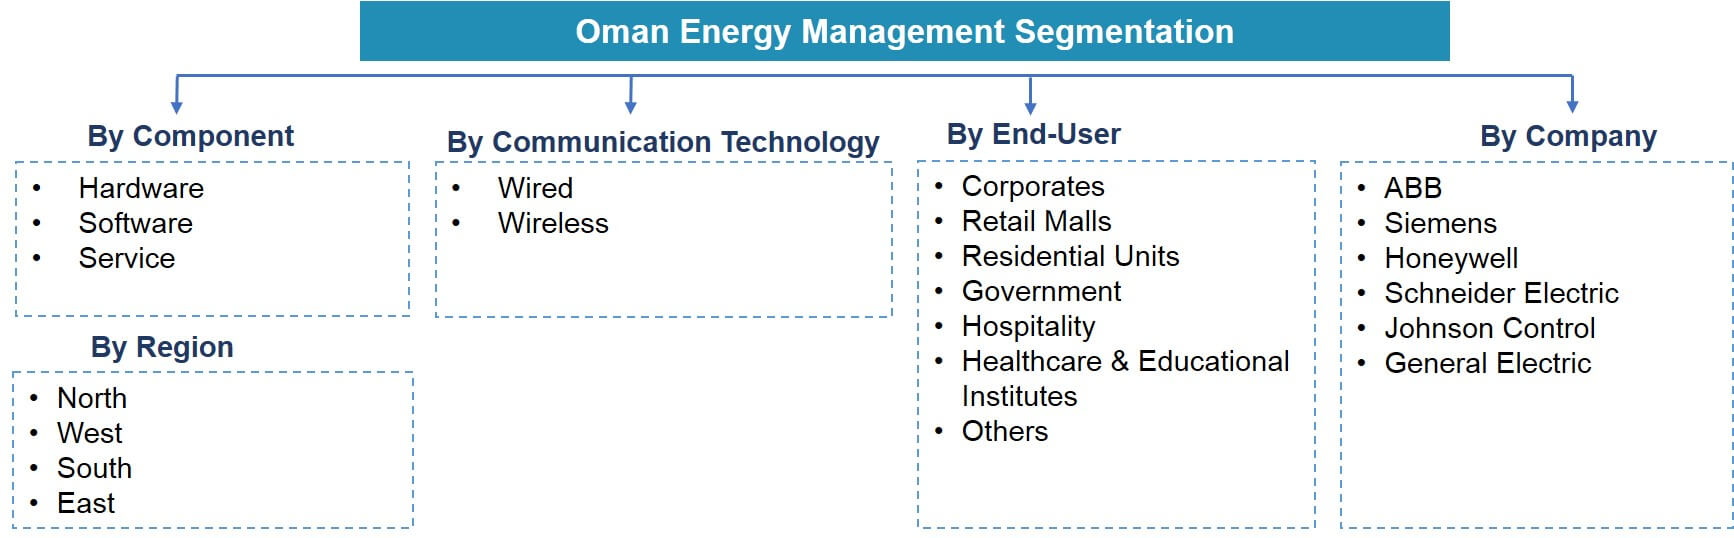 Oman Energy Management Market Segmentation